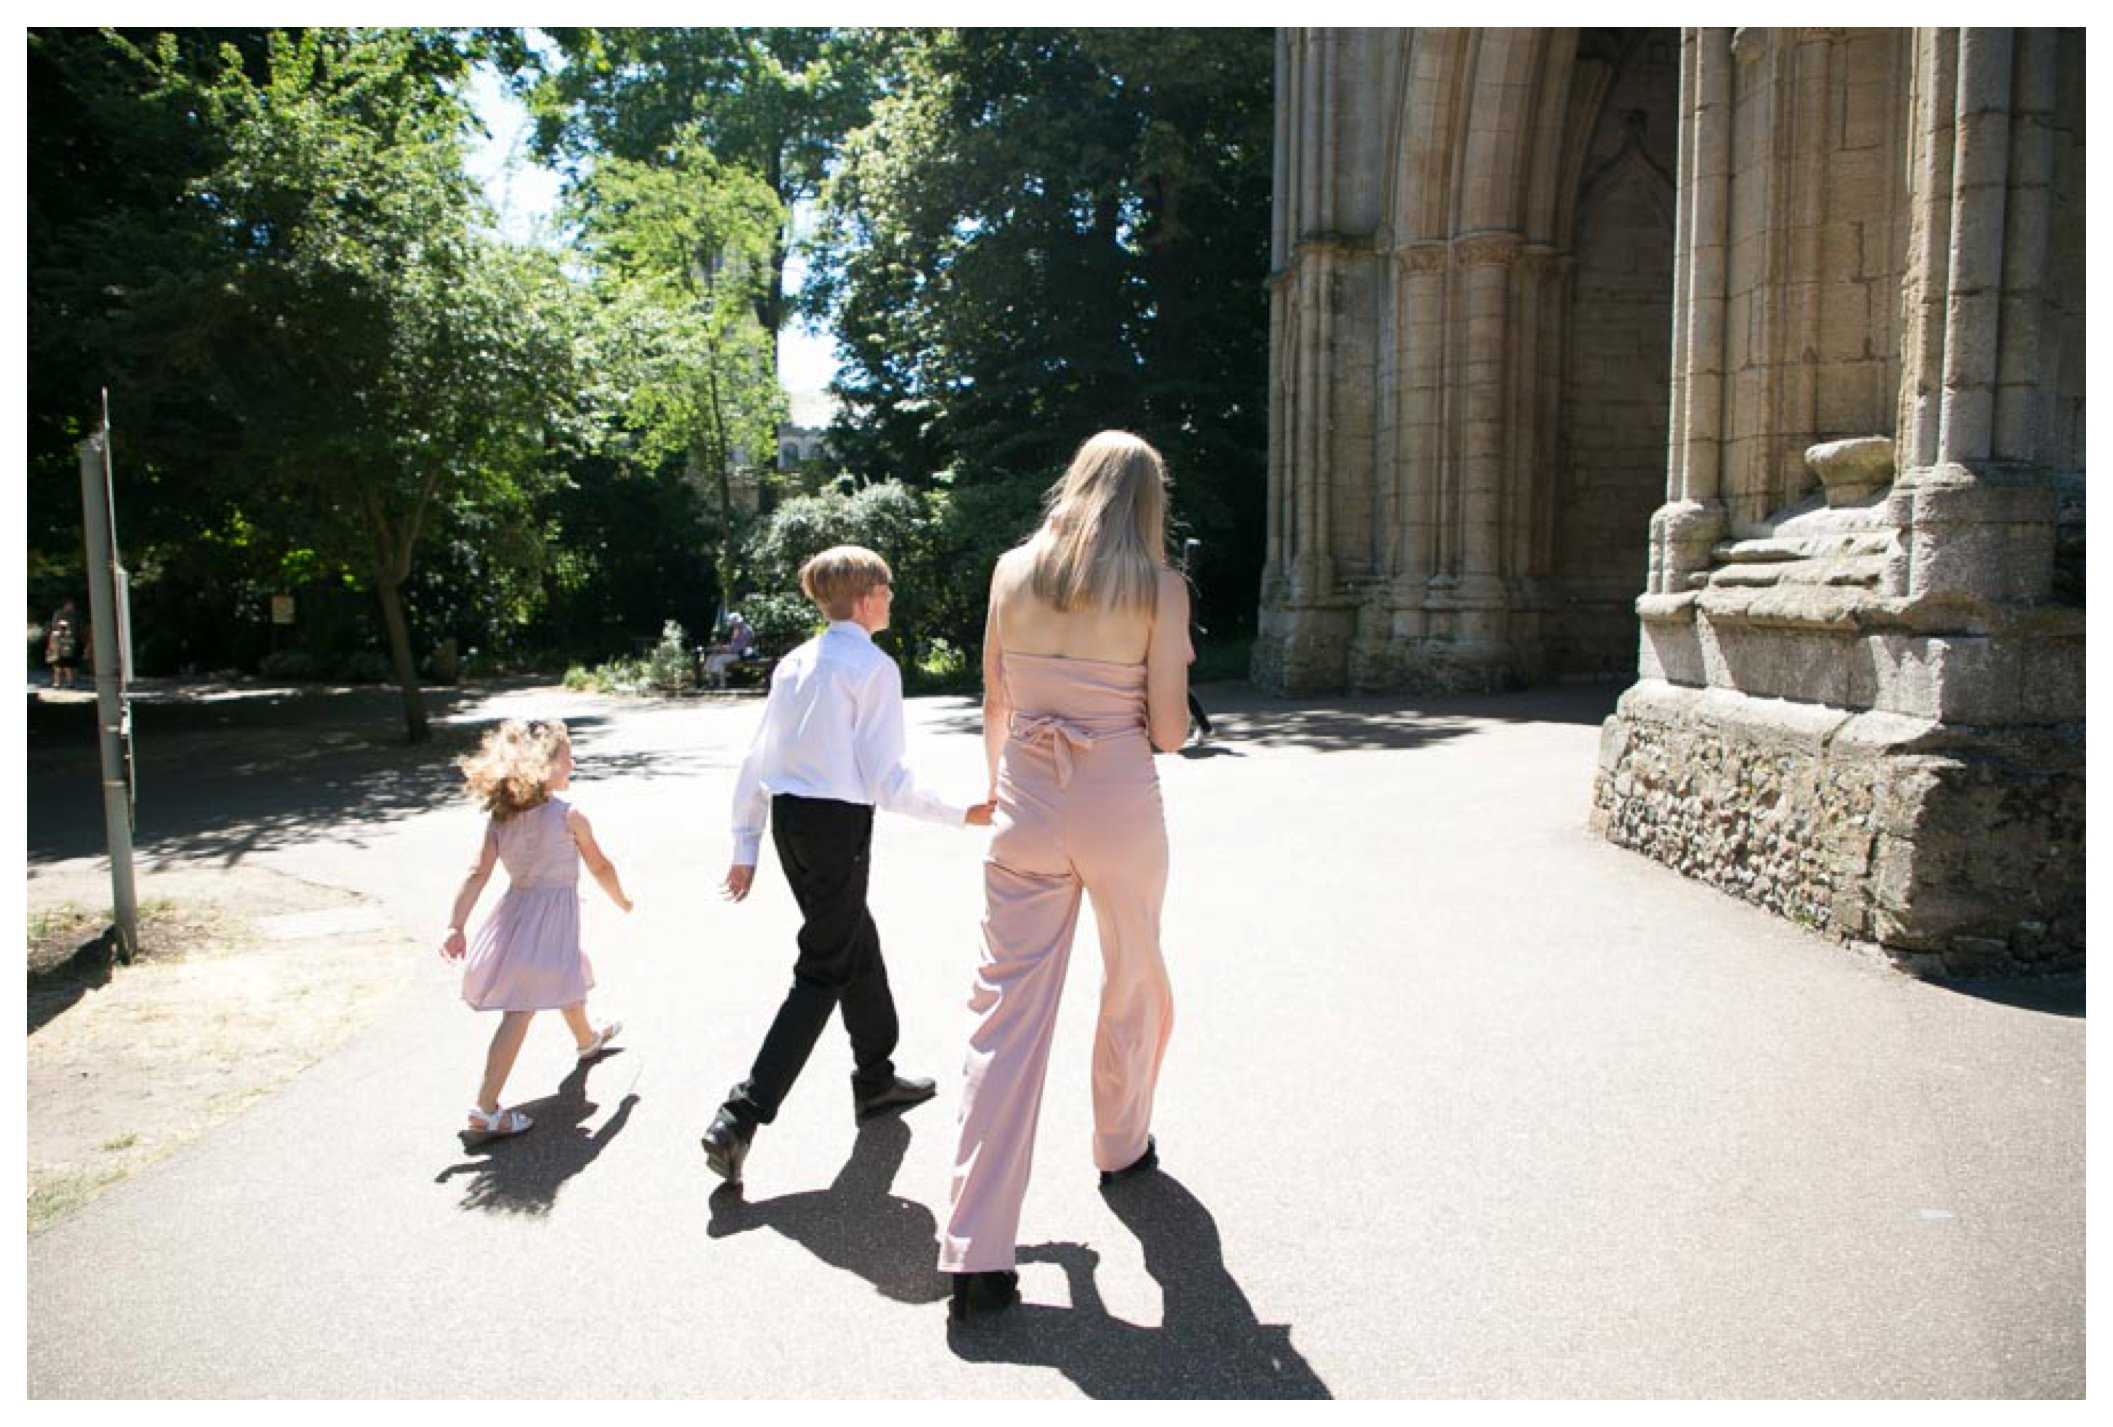 three children walking together towards large archway